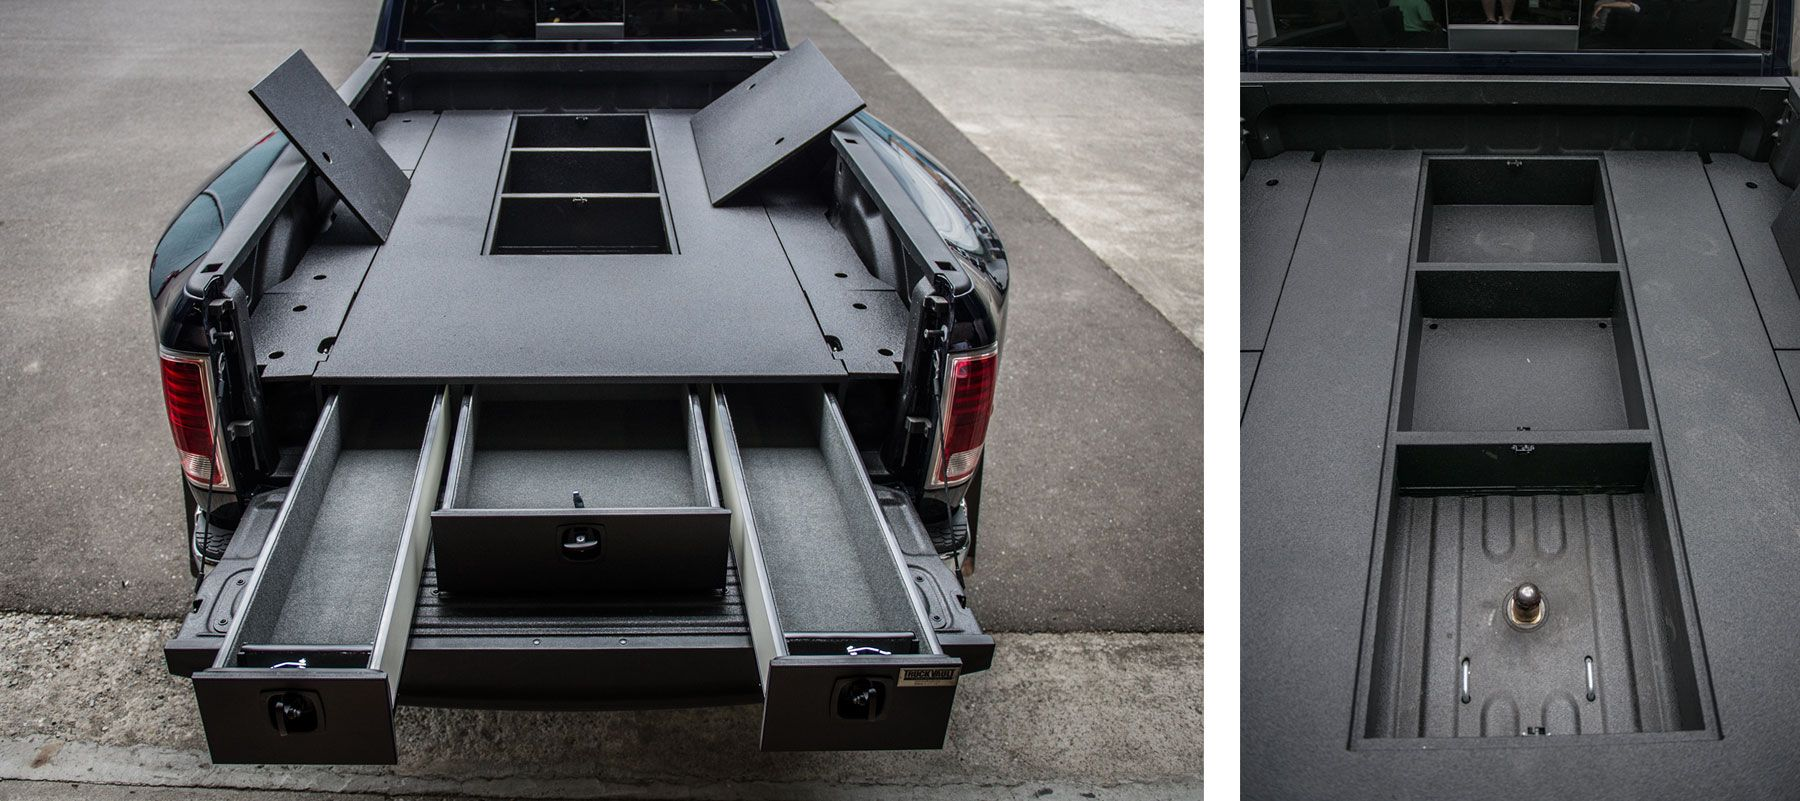 A great storage solution from TruckVault for 5th wheel